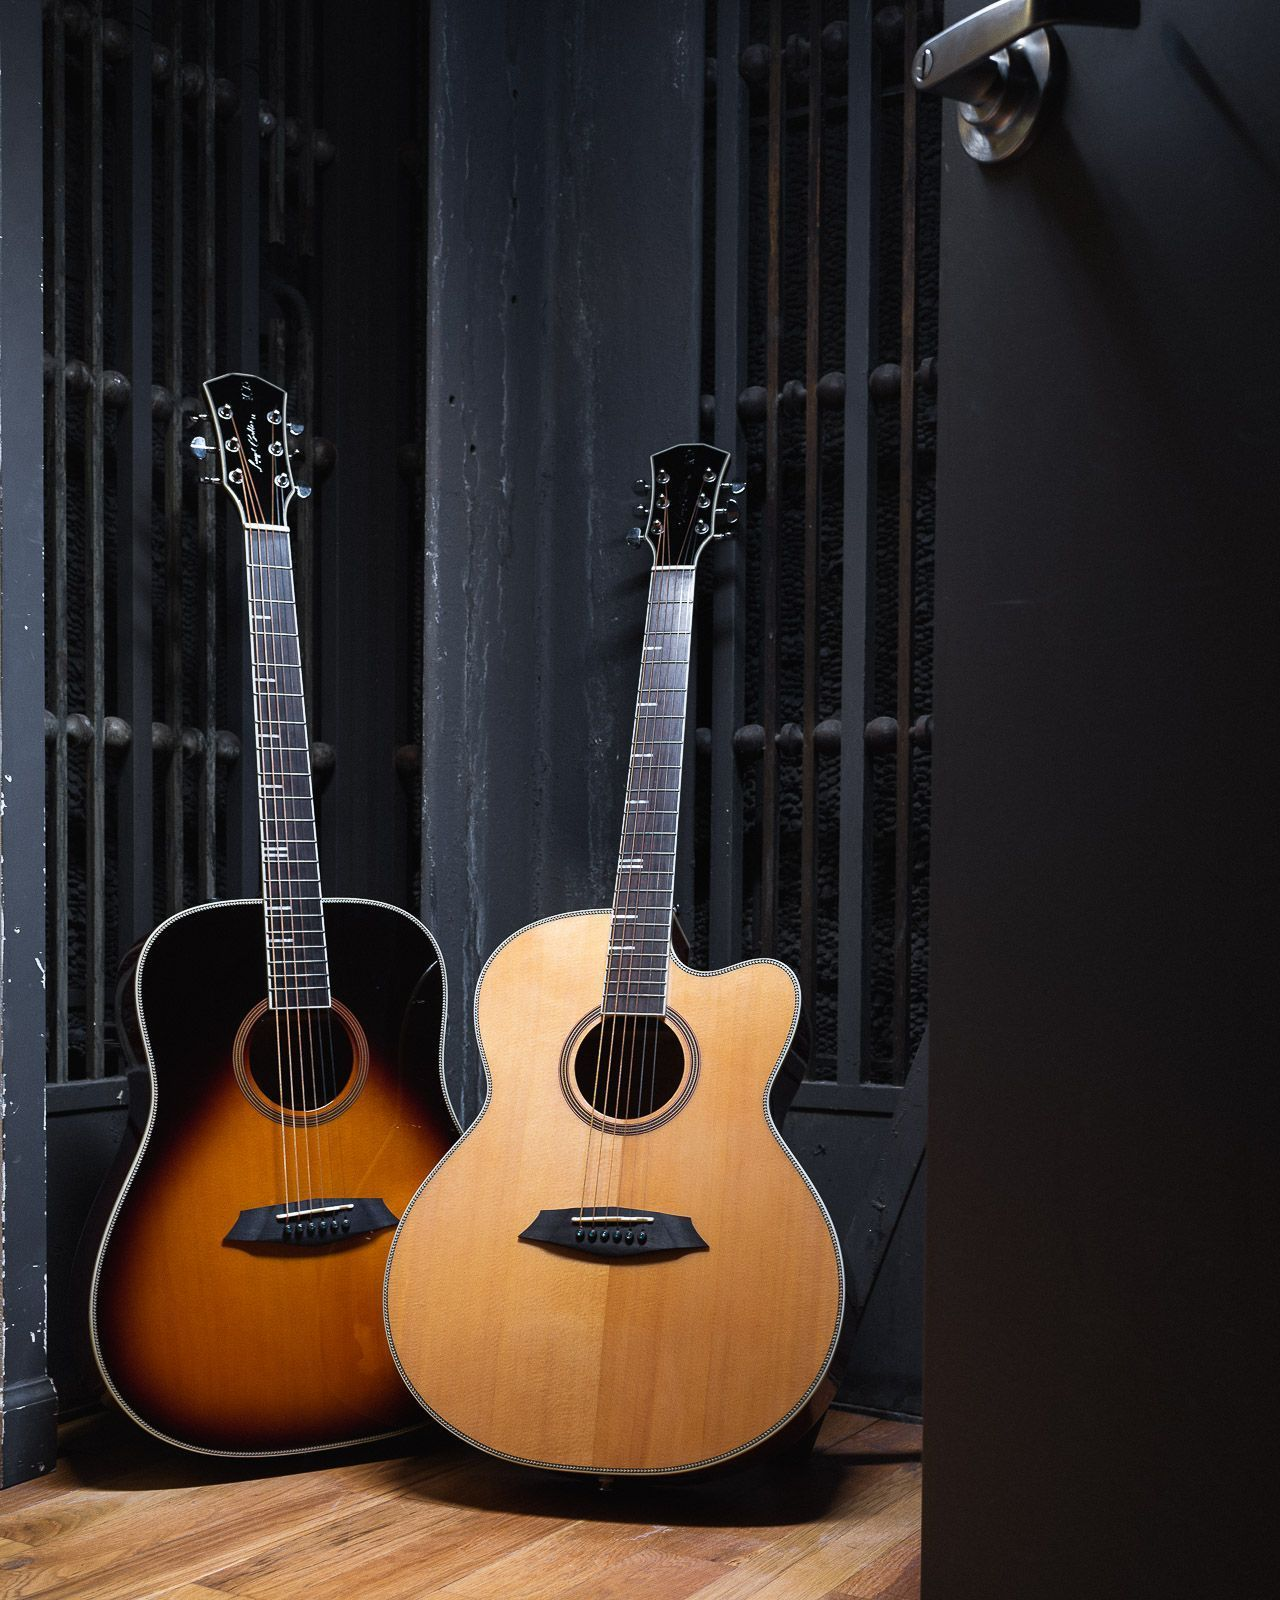 The Sound Of Sire Is Taking Over Our Acoustic Room Shop Larry Carlton Acoustics Now In Stock Chicagomusicexchang Guitar Photography Guitar Acoustic